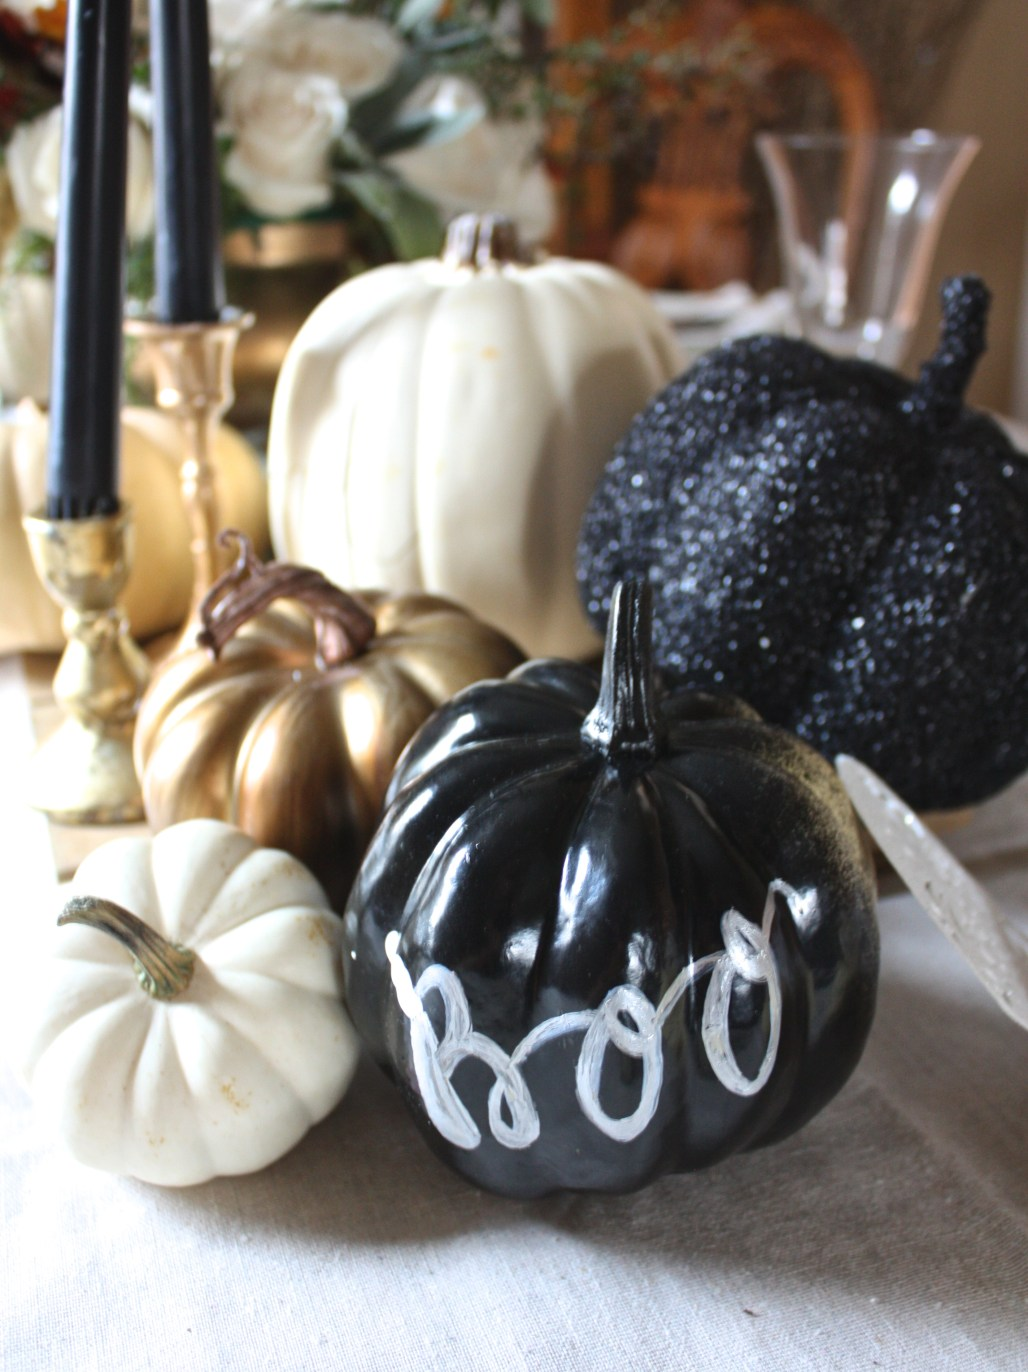 Simple Black Halloween Details & Place Setting 101 : Casual Table | Dreamery Events